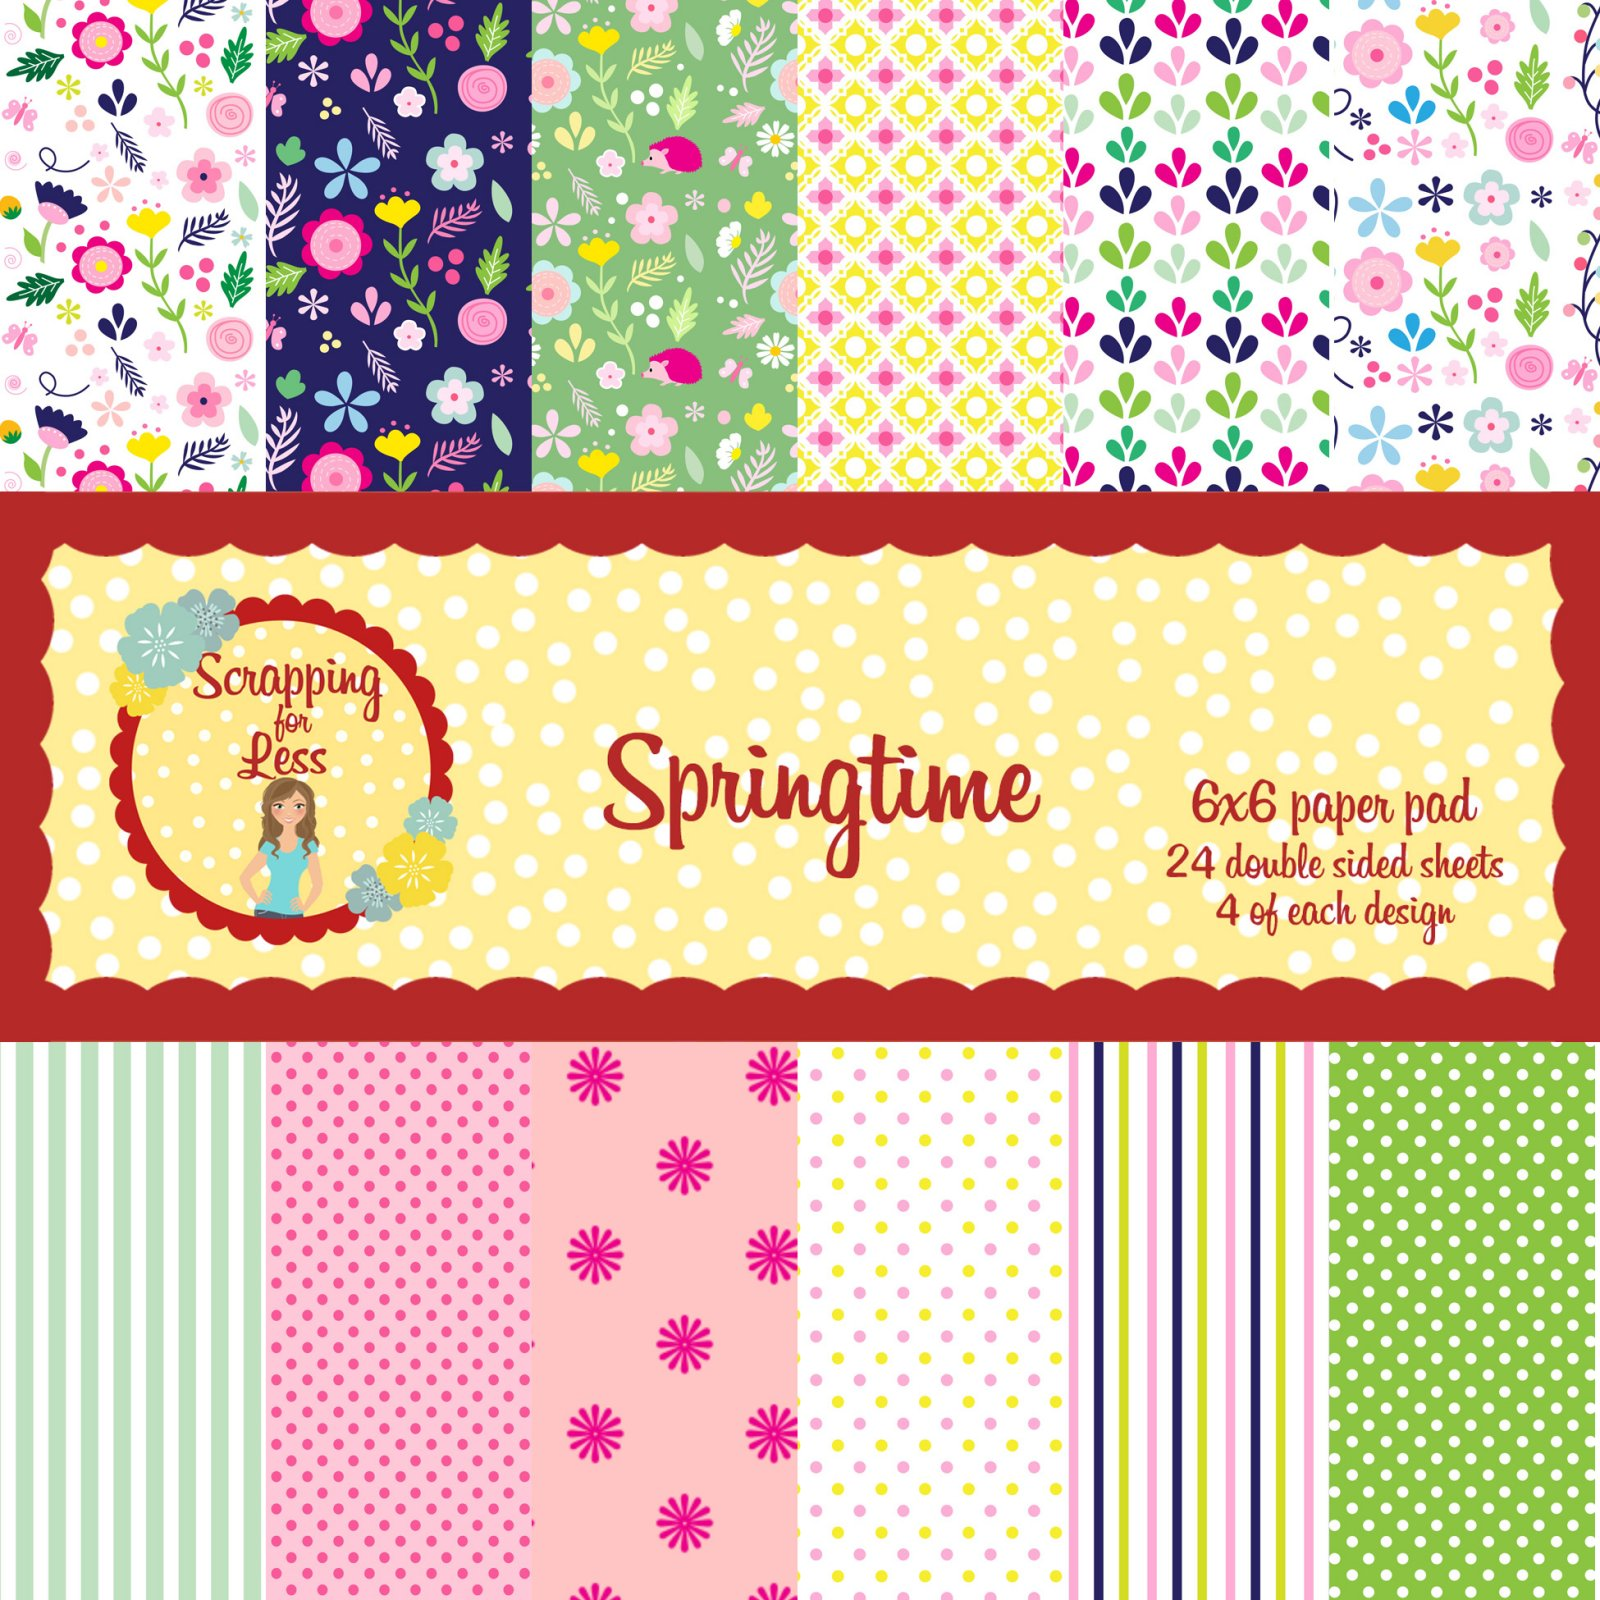 Scrapping for Less Springtime 6x6 Paper Pad